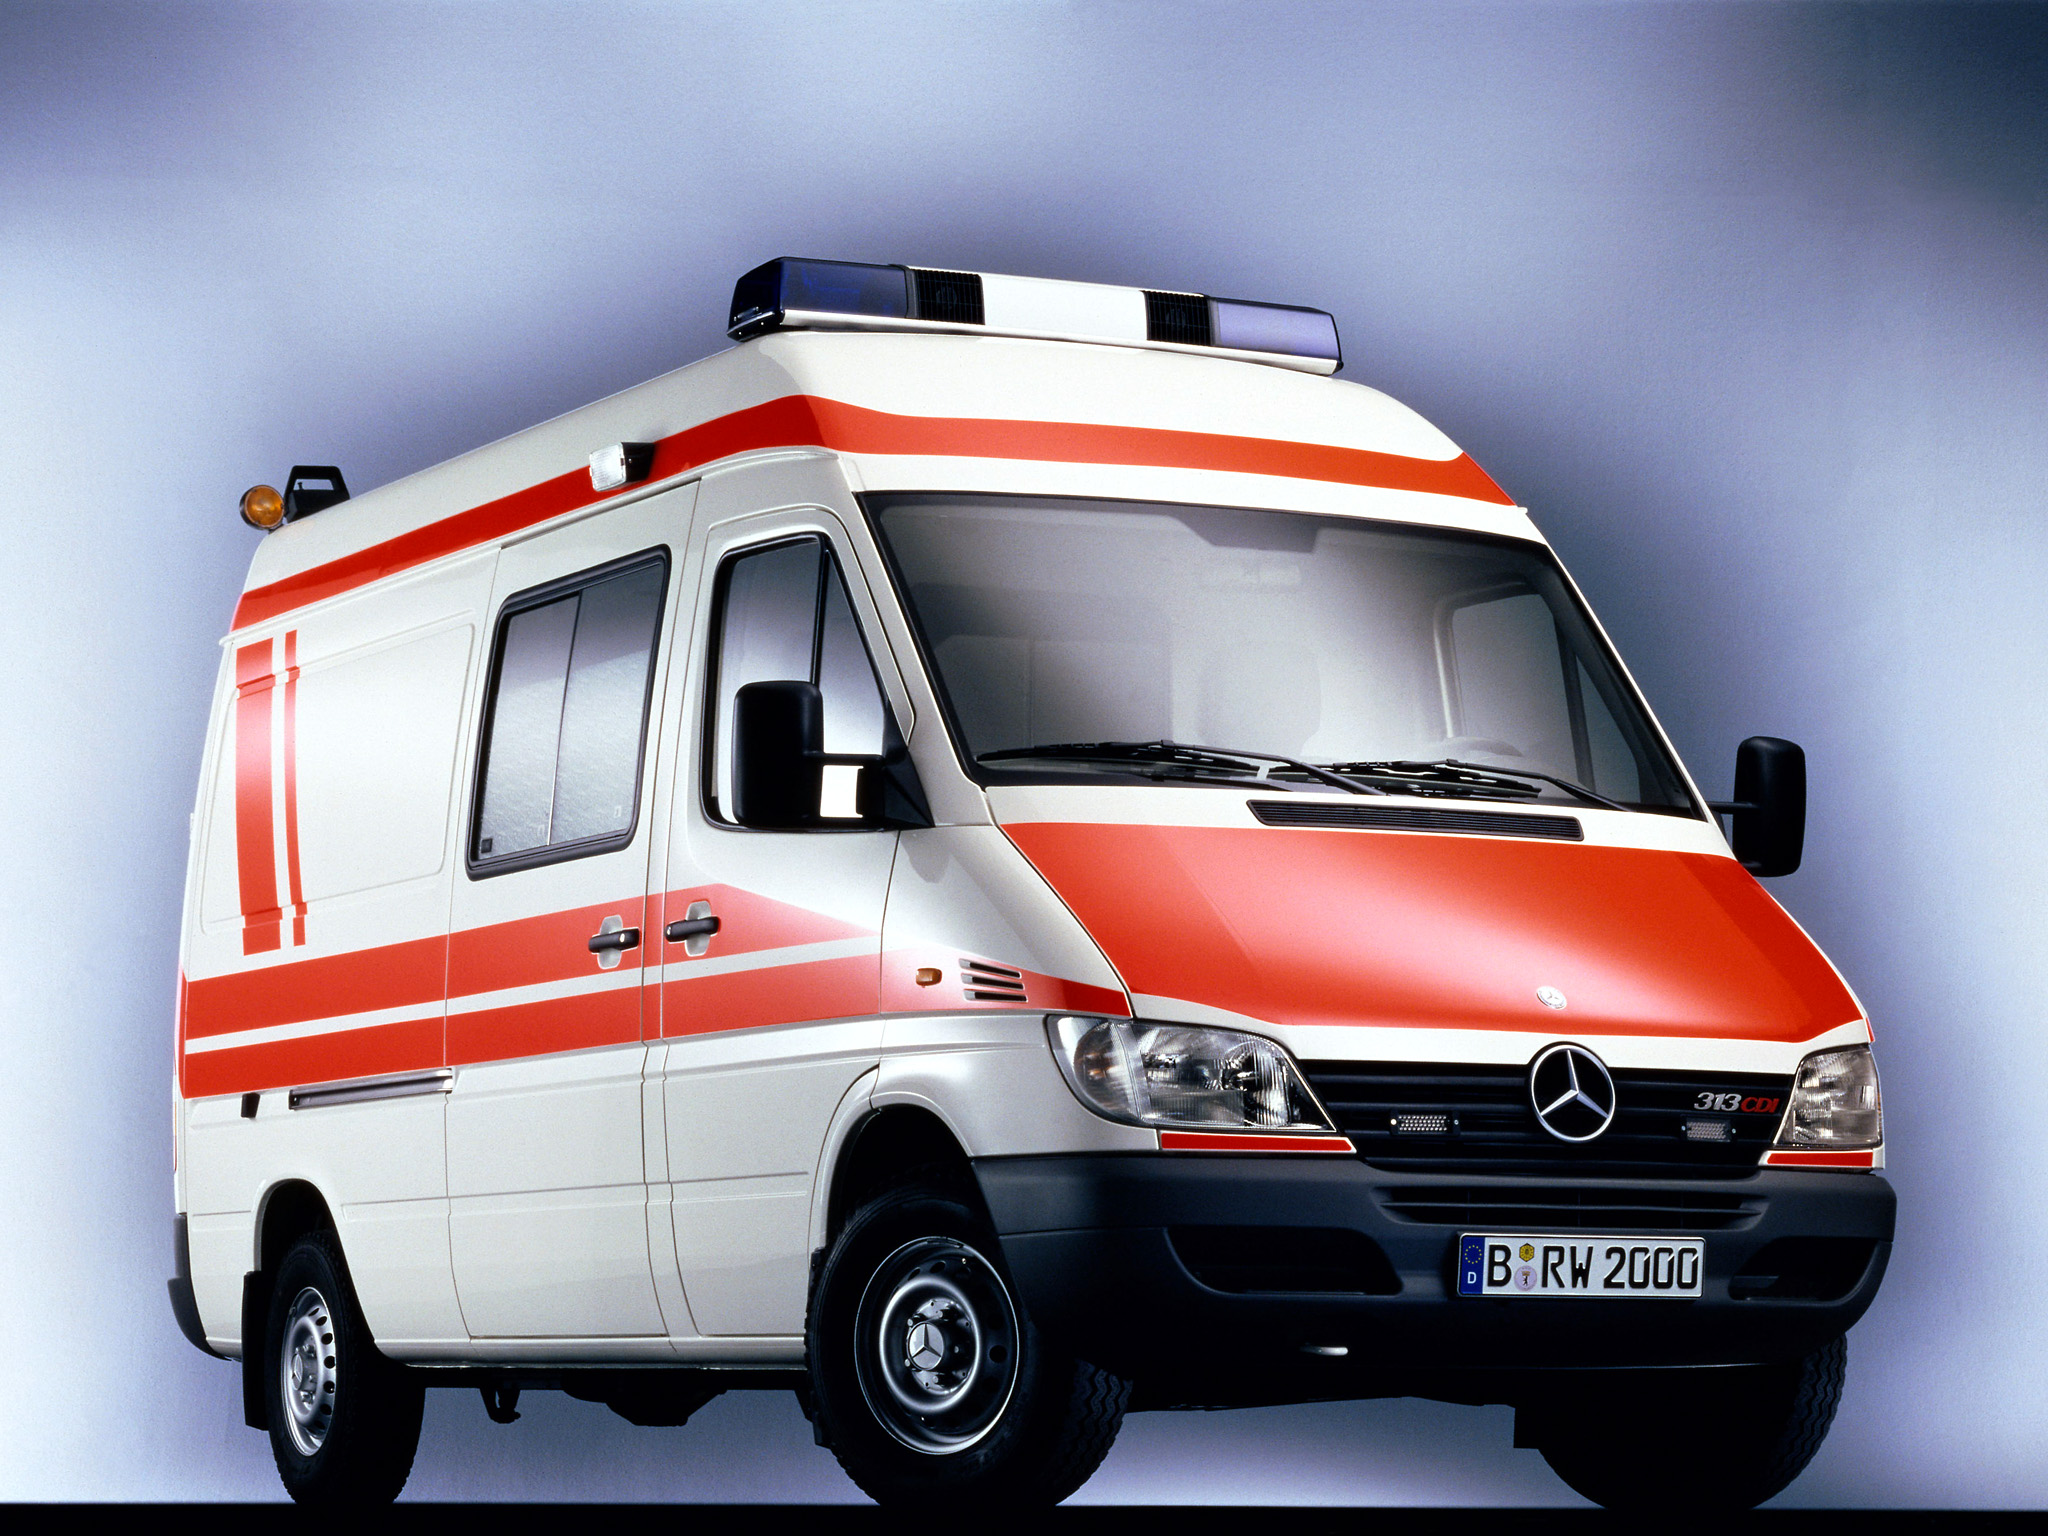 2000 mercedes benz sprinter ambulance emergency wallpaper for Mercedes benz emergency